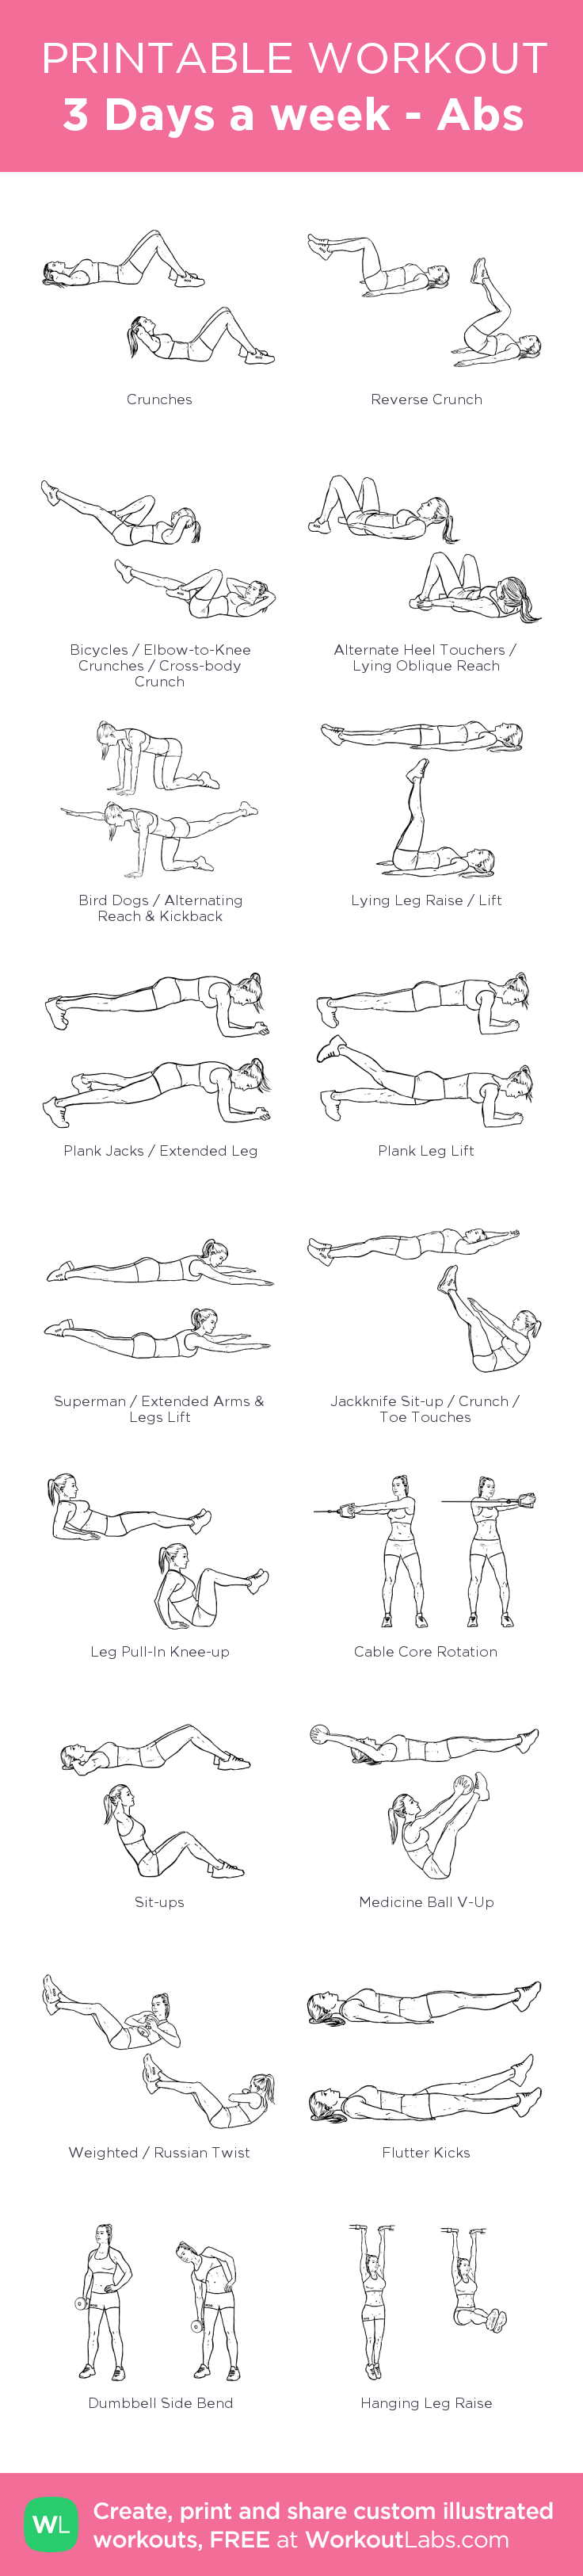 3 Days a week - Abs: my visual workout created at WorkoutLabs.com